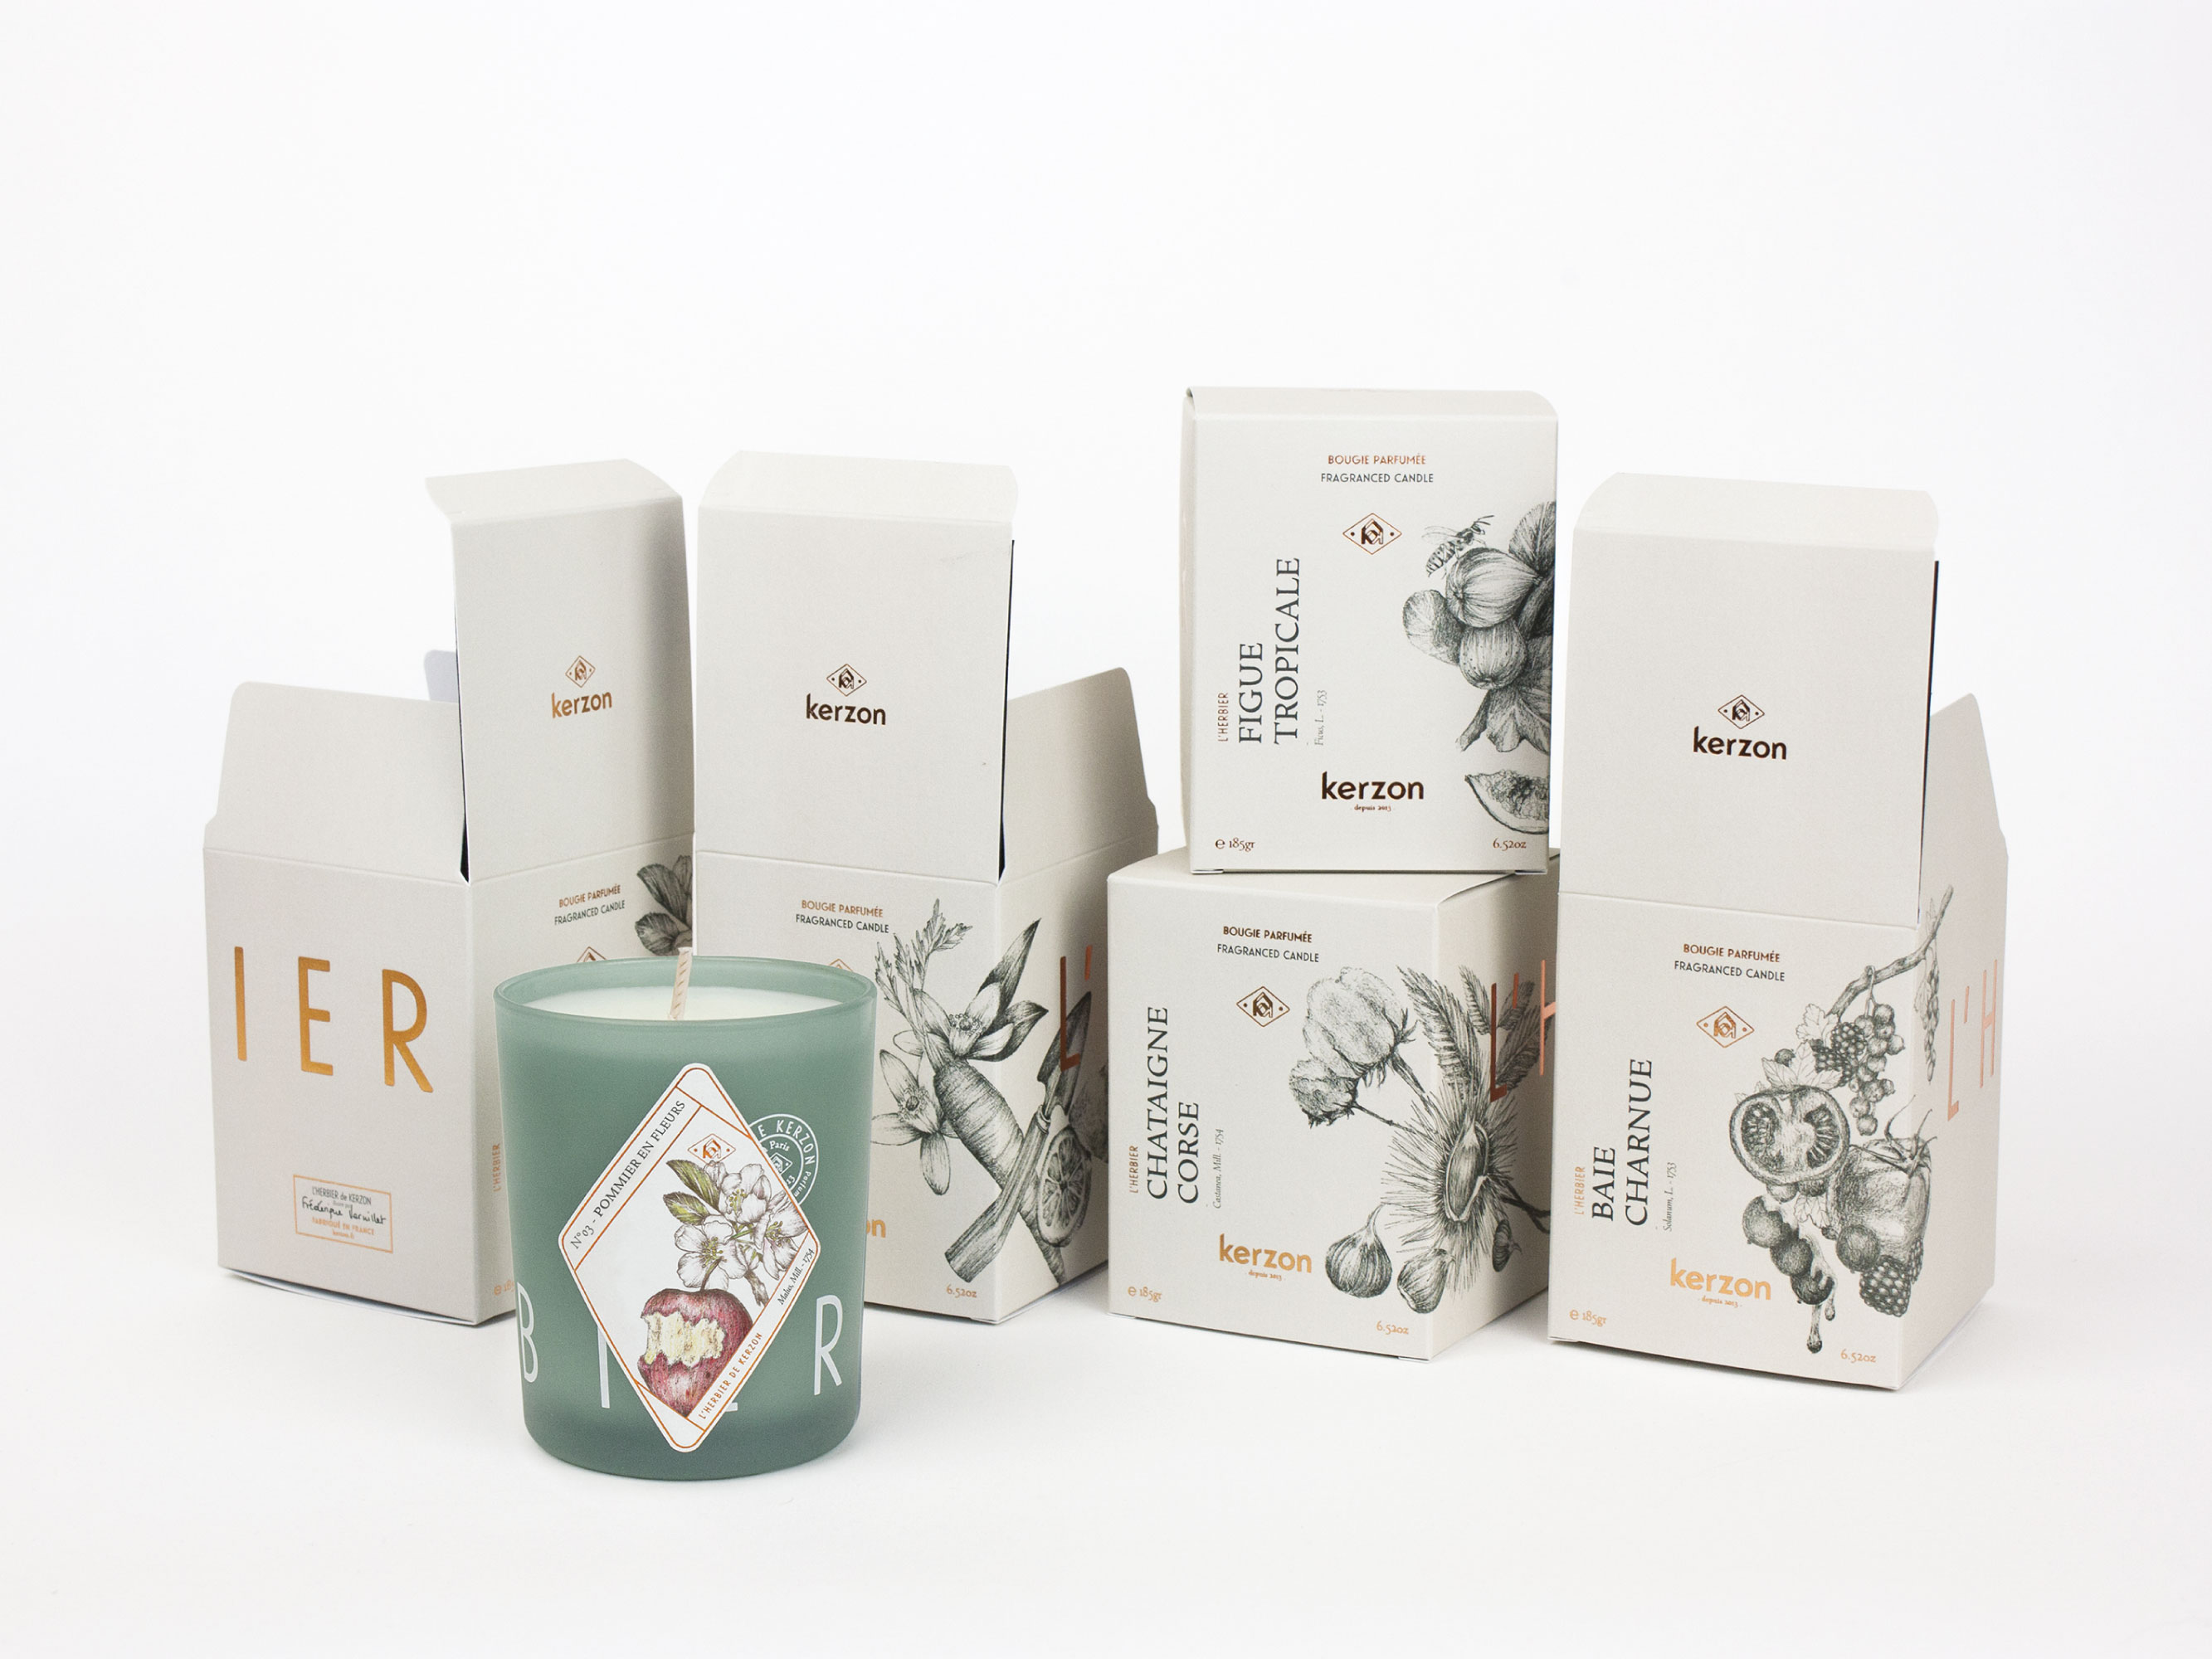 kerzon-france-bougie-parfumee-immotelle-dunes-plage-herbier-packaging